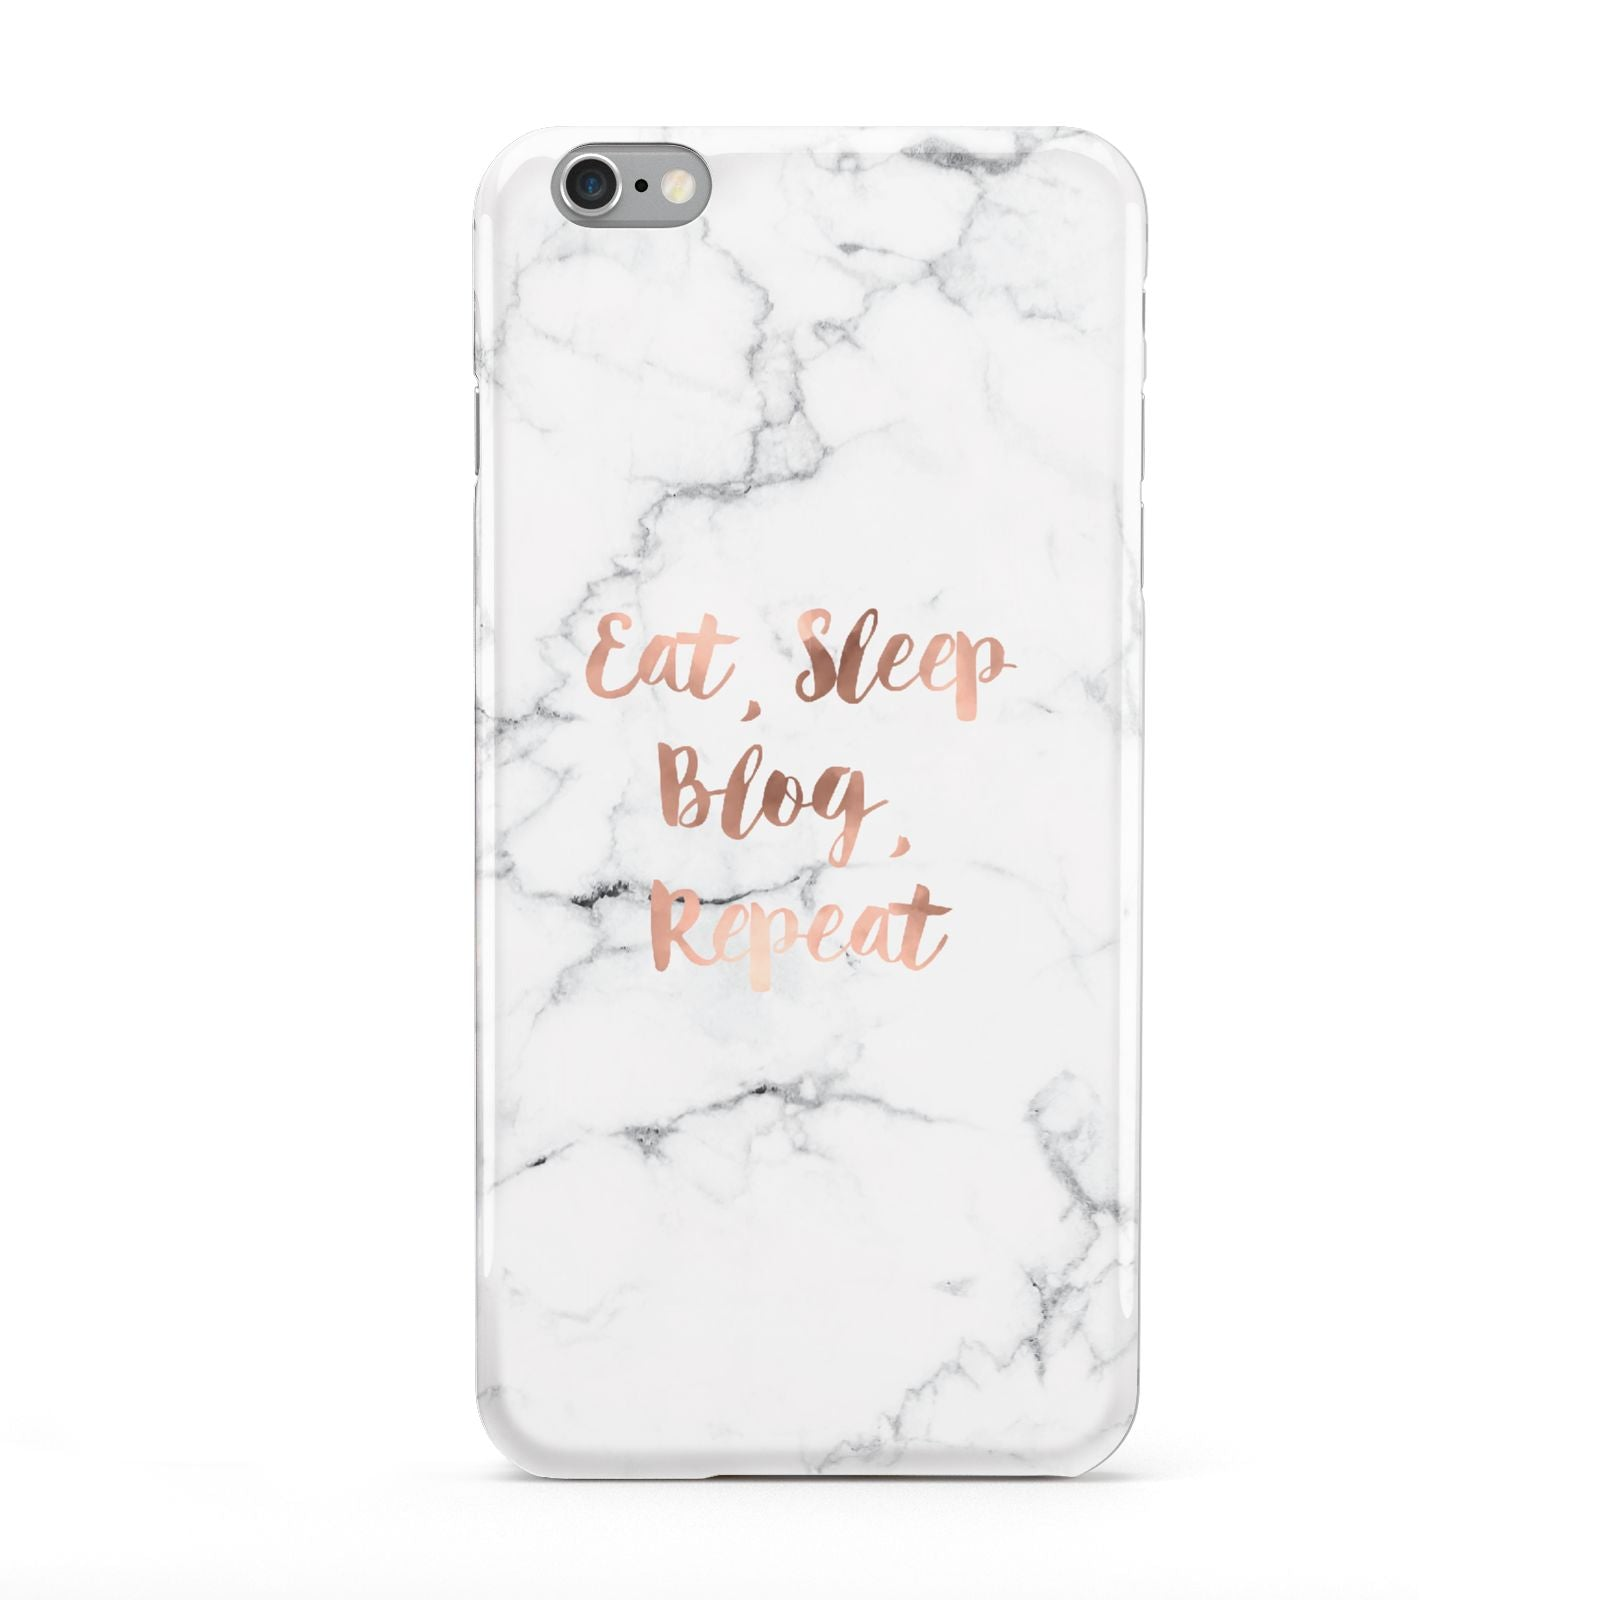 Eat Sleep Blog Repeat Marble Effect Apple iPhone 6 Plus Case